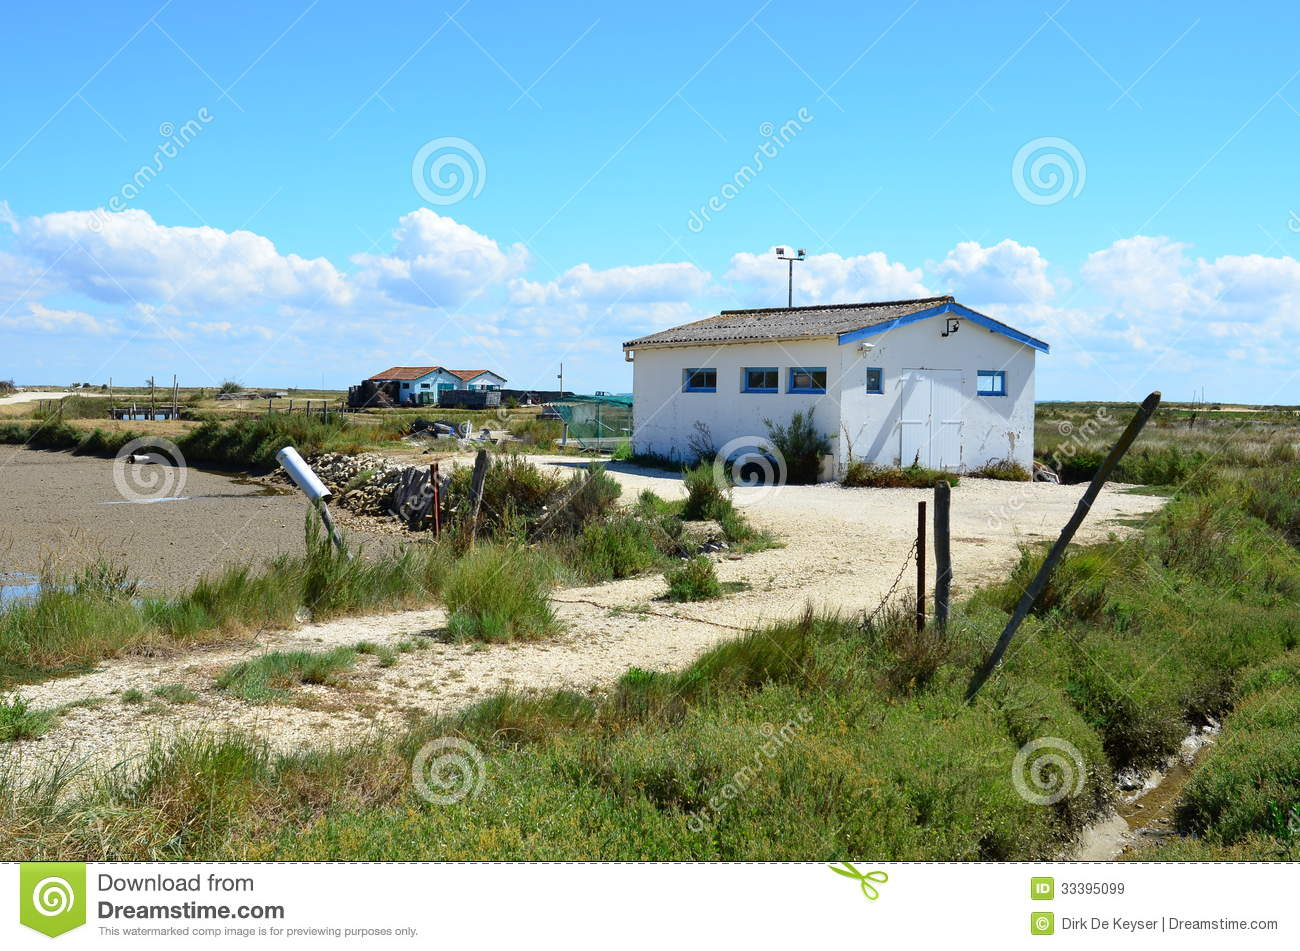 Site ostriecole, Oyster farming harbour, Oleron,Charente Maritime, France